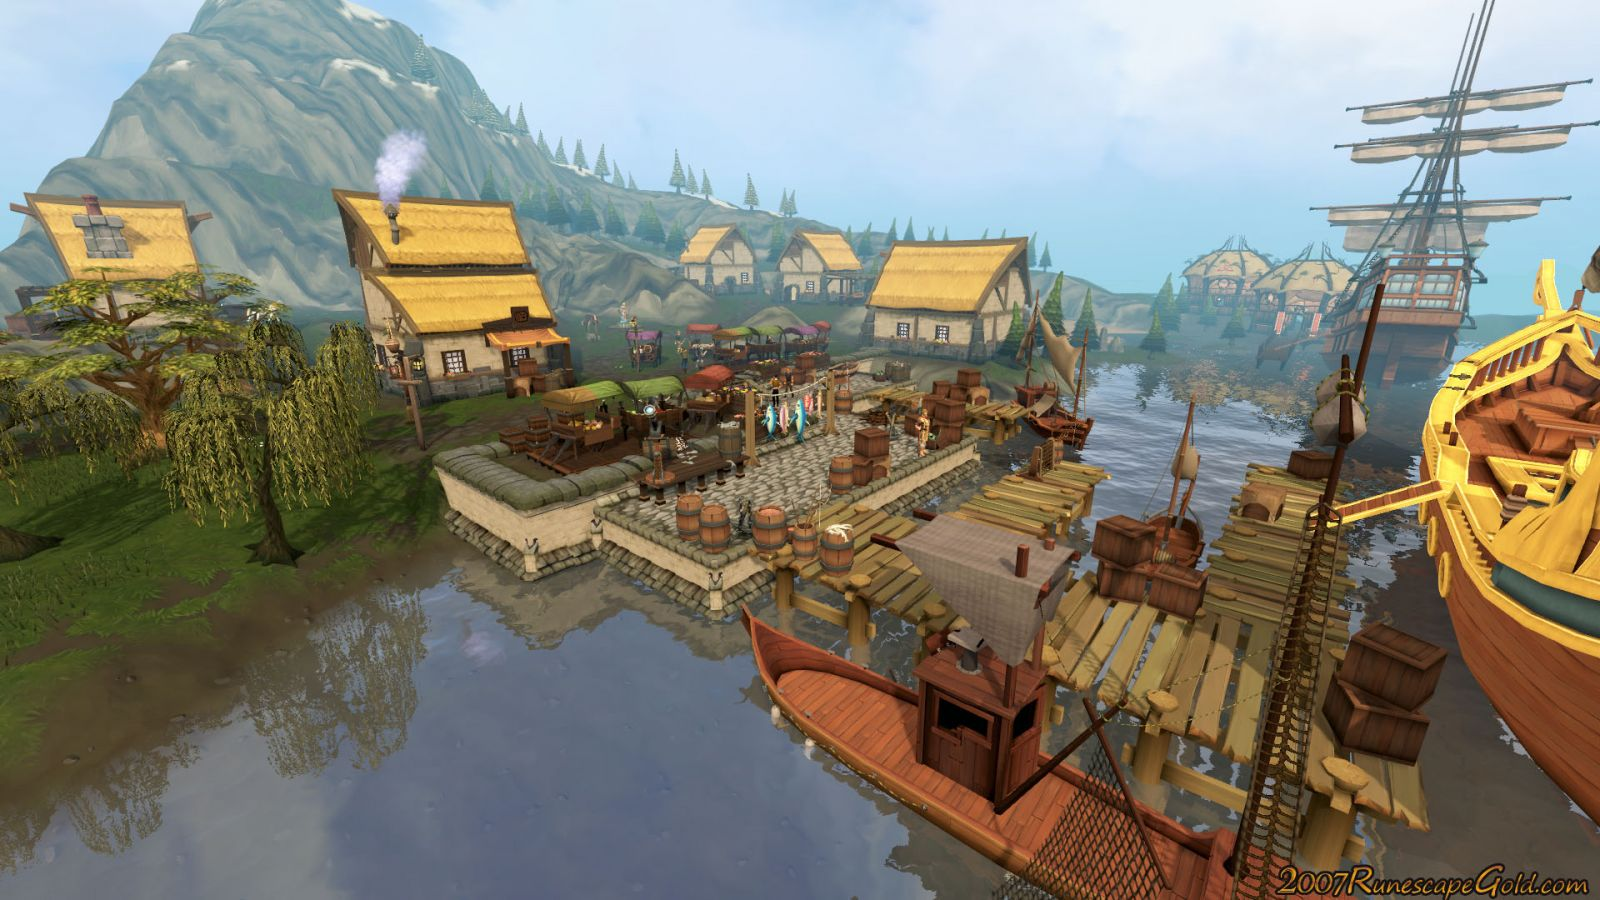 So that is our favorites. We would love to hear from you guys on what your favorite town, city or place in Runescape is.